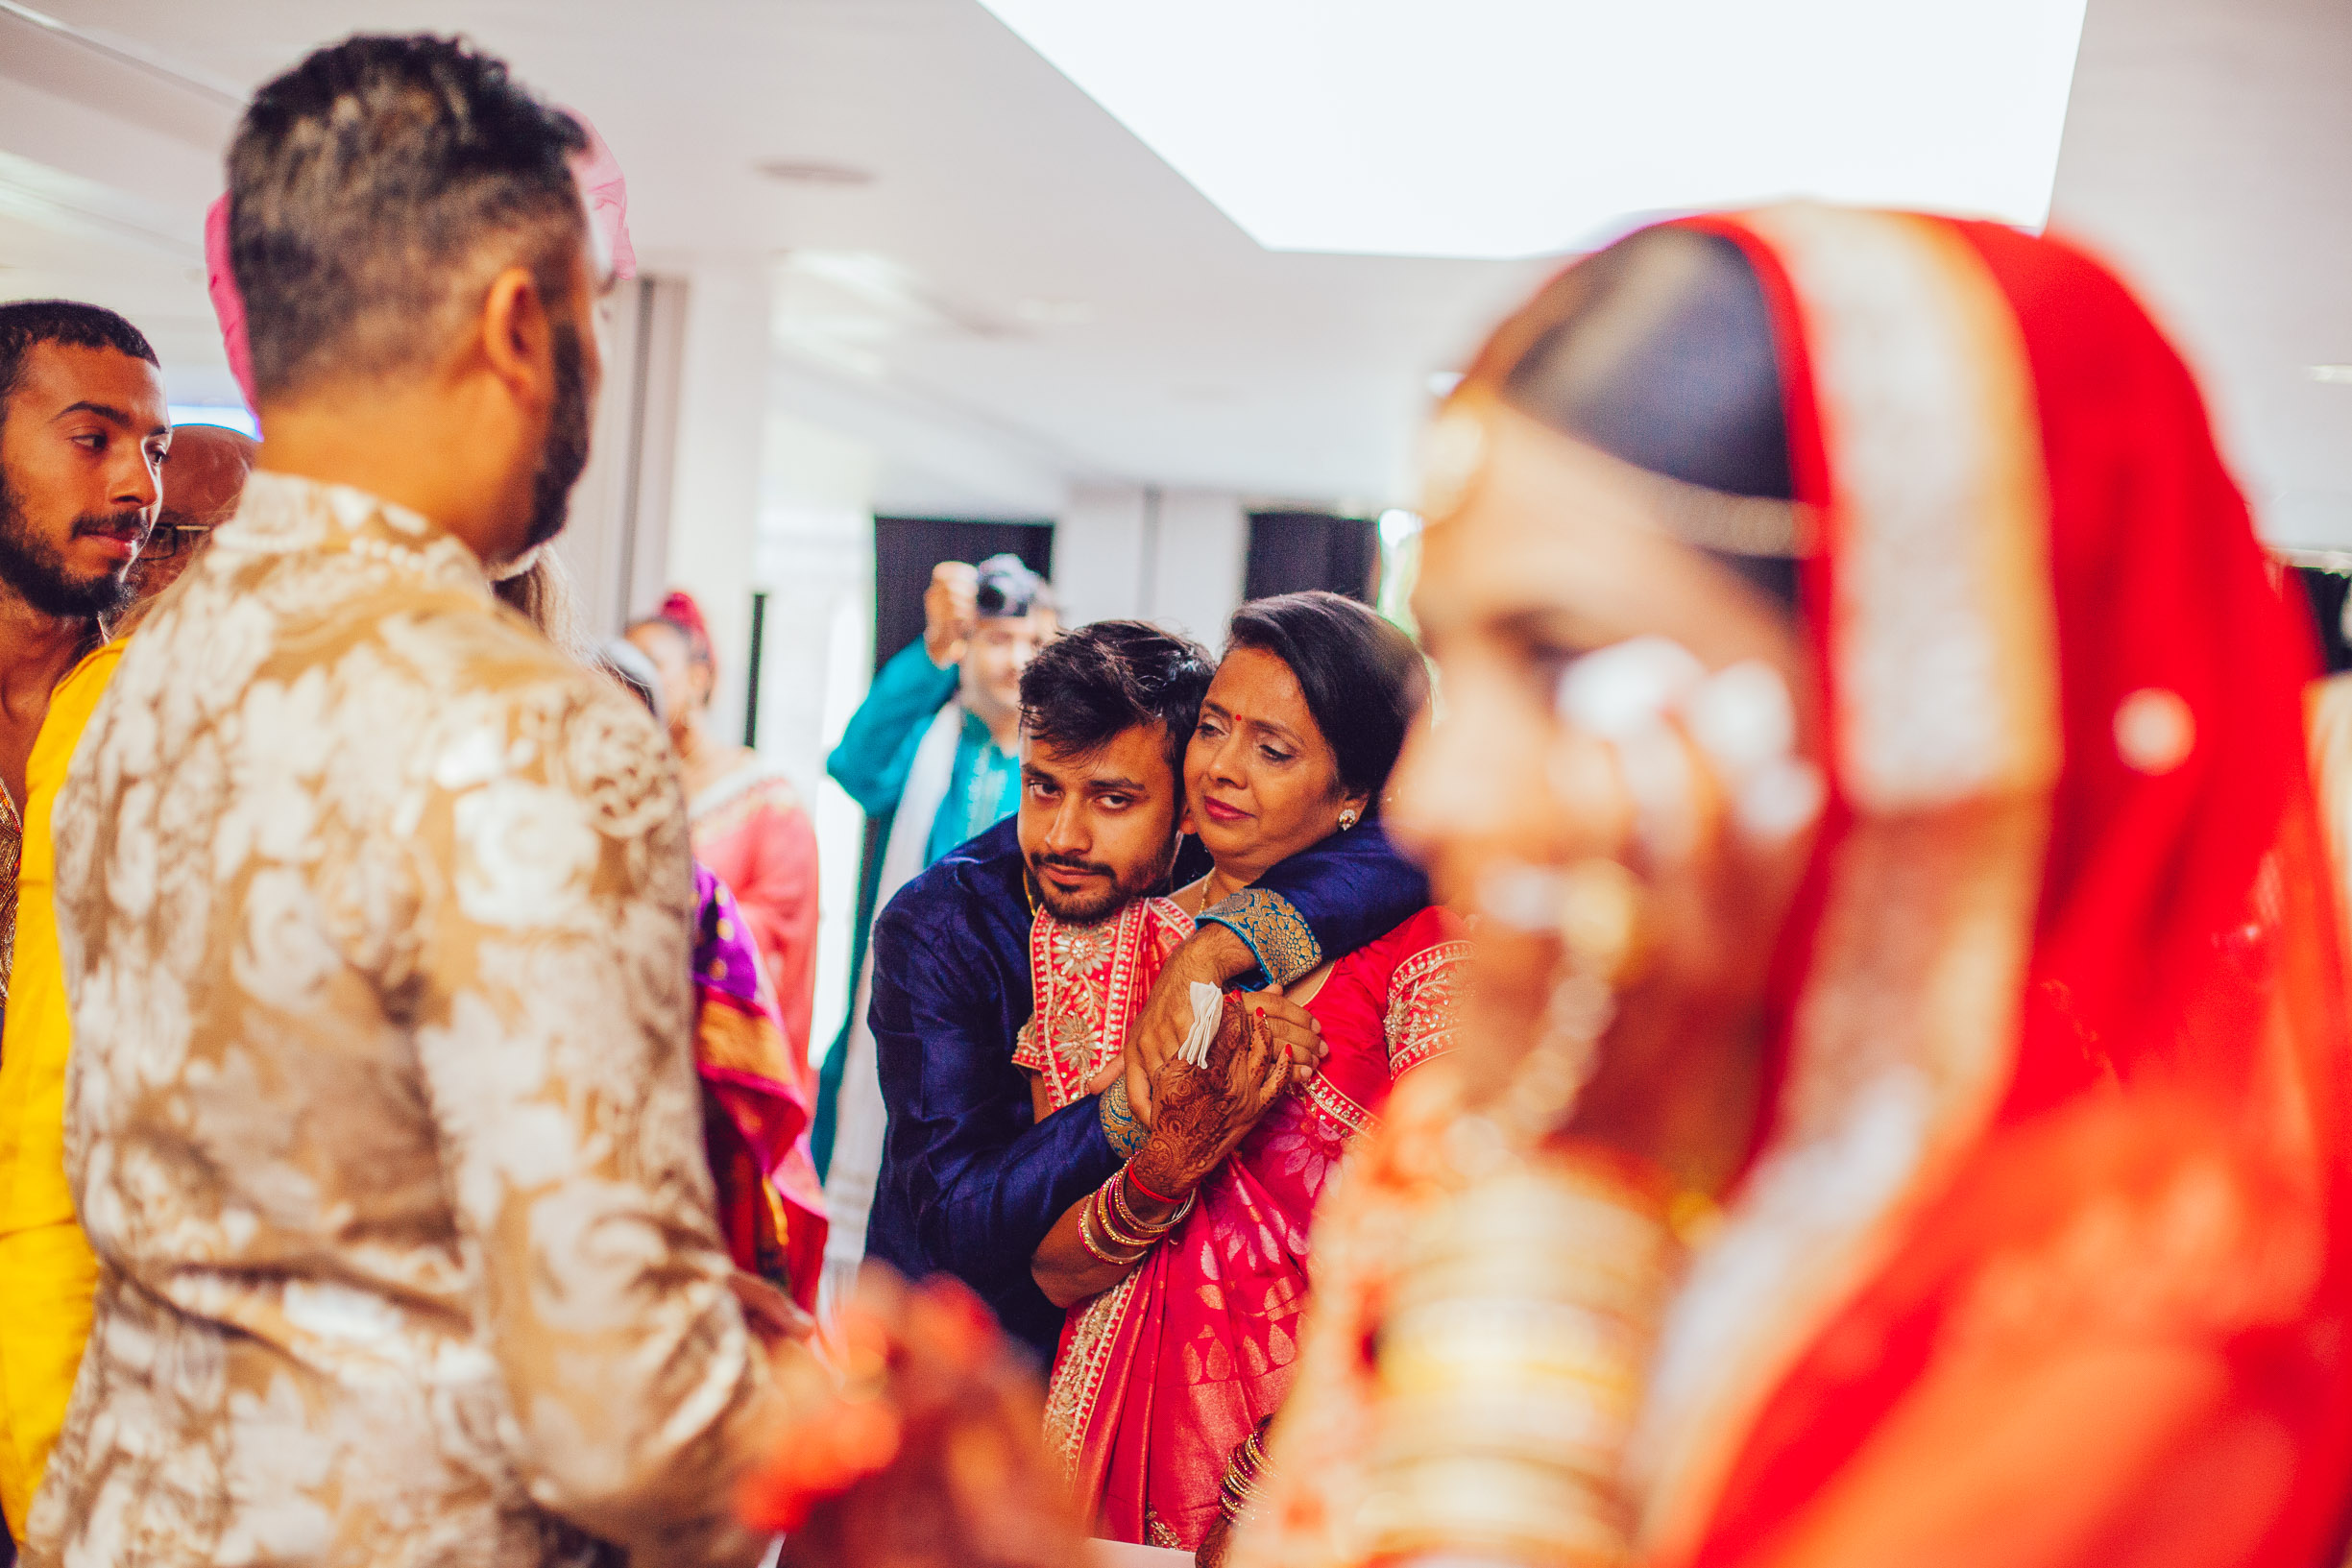 amit&ceema_eden_moments_wedding_photography-24